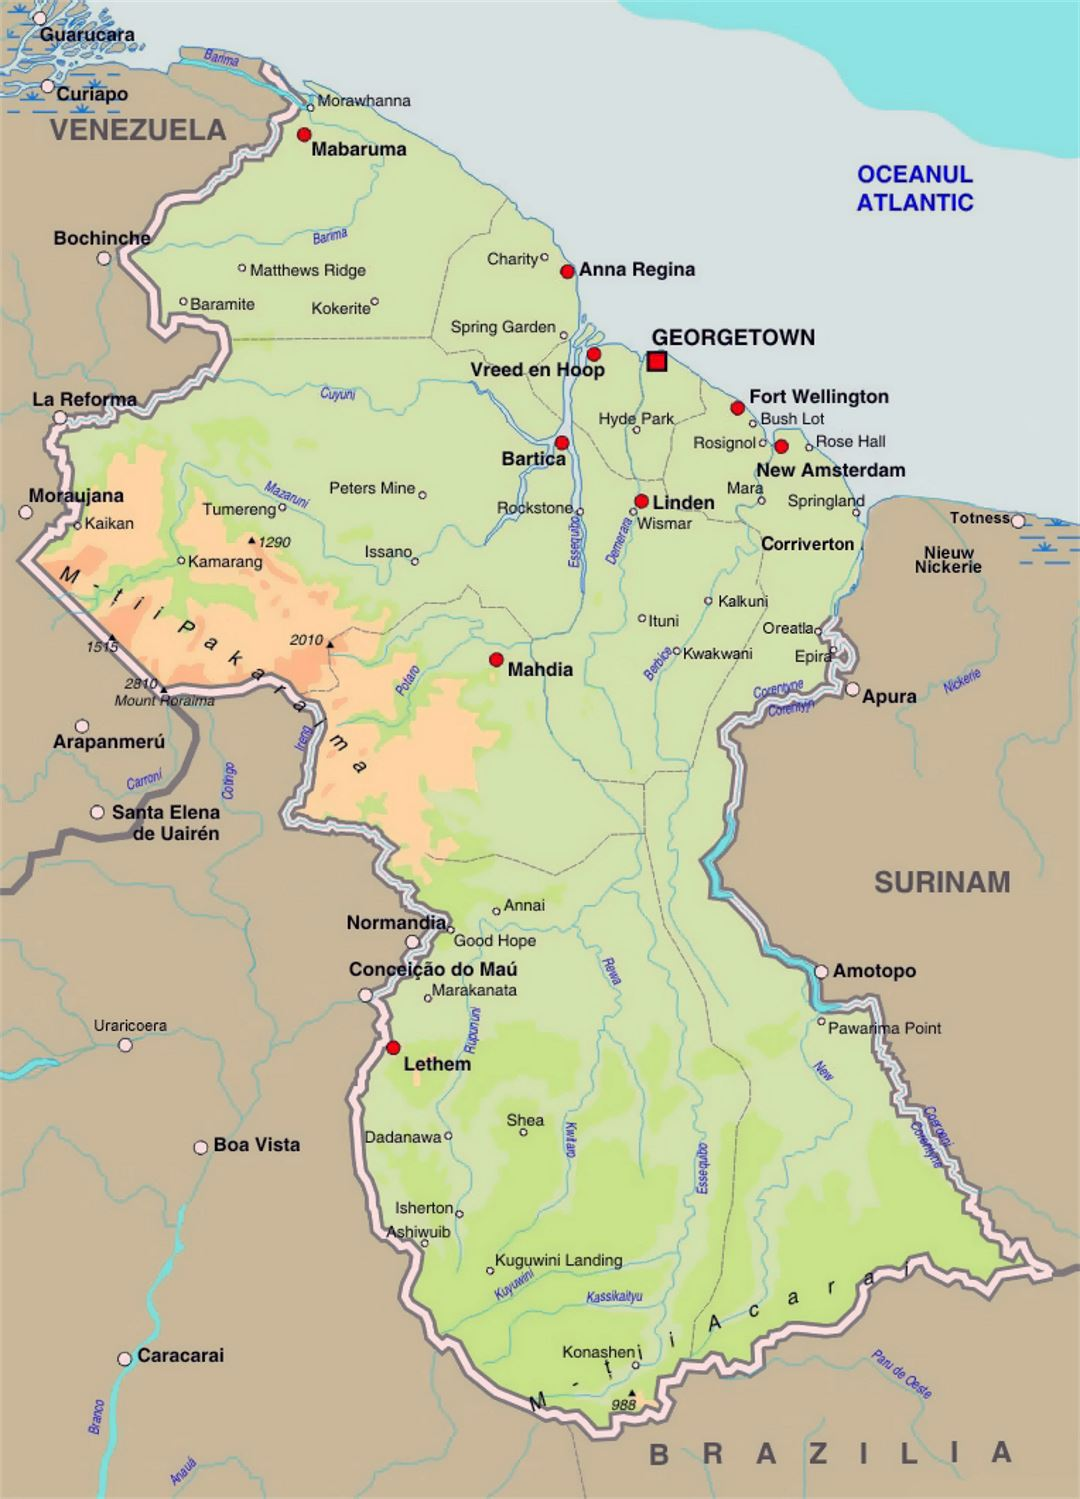 Detailed Elevation Map Of Guyana With Roads And Cities Guyana